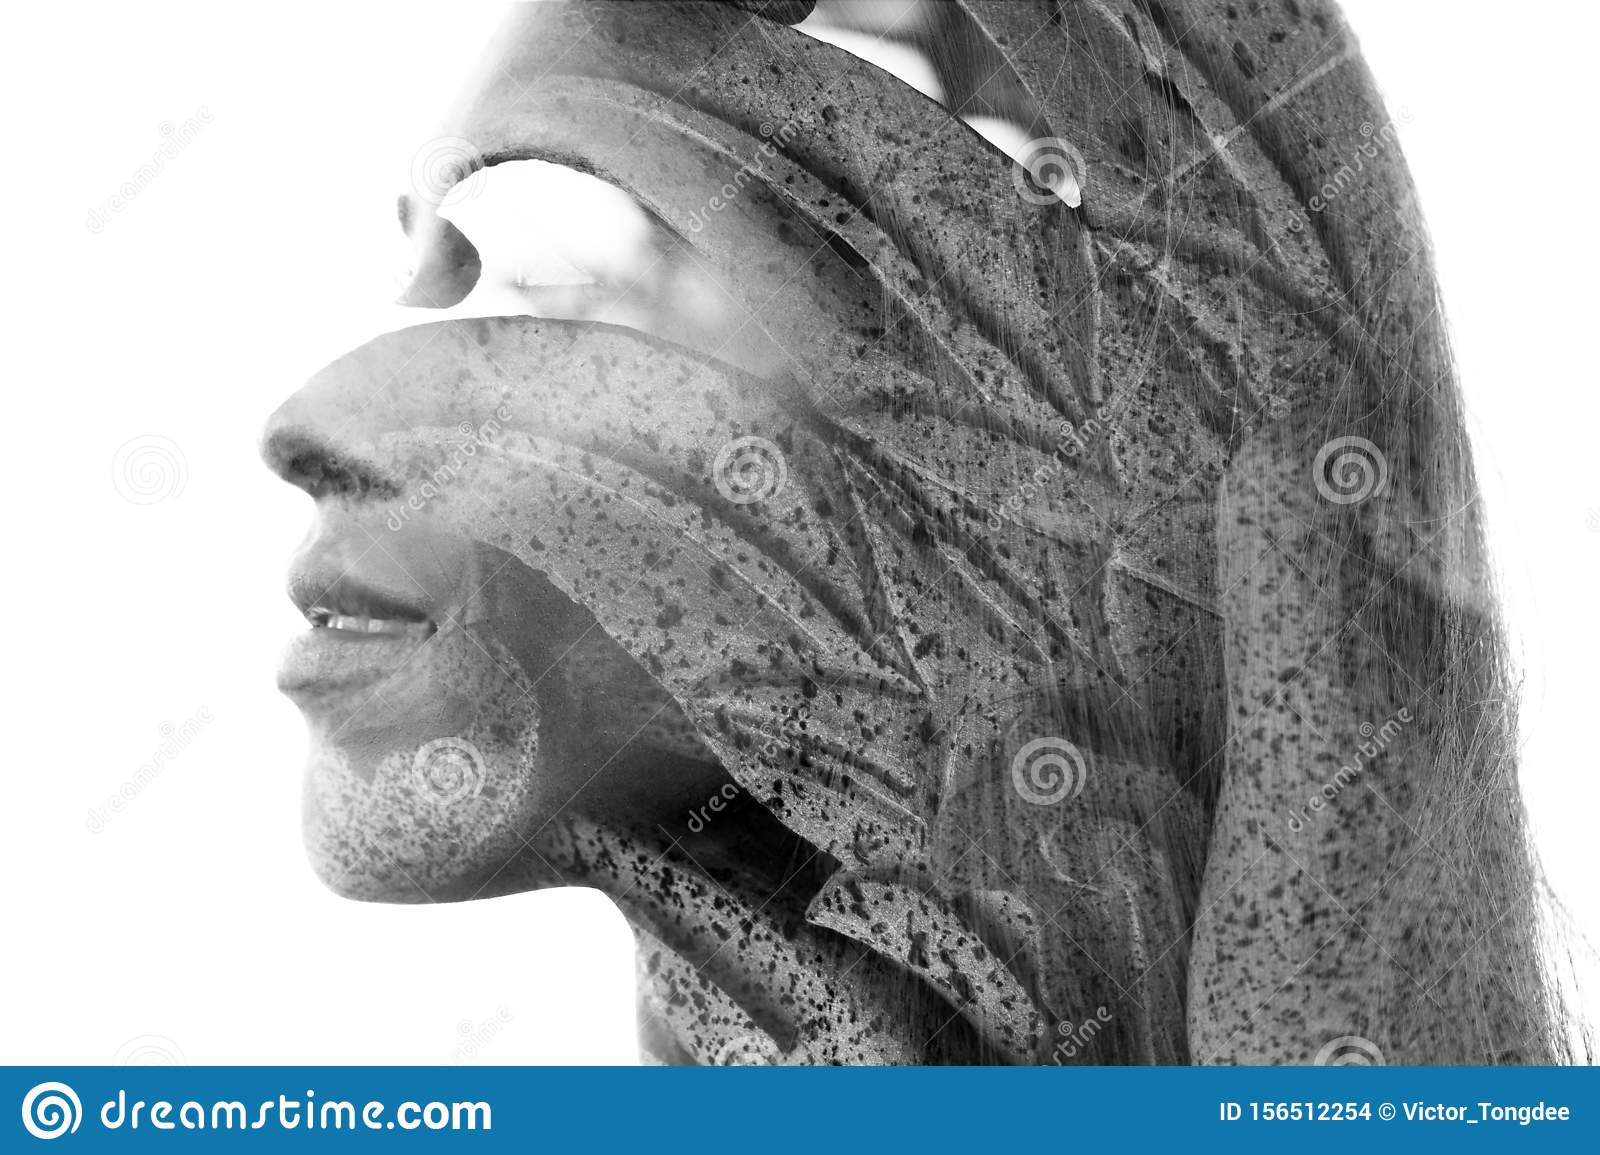 Double exposure close up portrait of an attractive young woman combined with a Balinese rock statue with leaf texture, black and